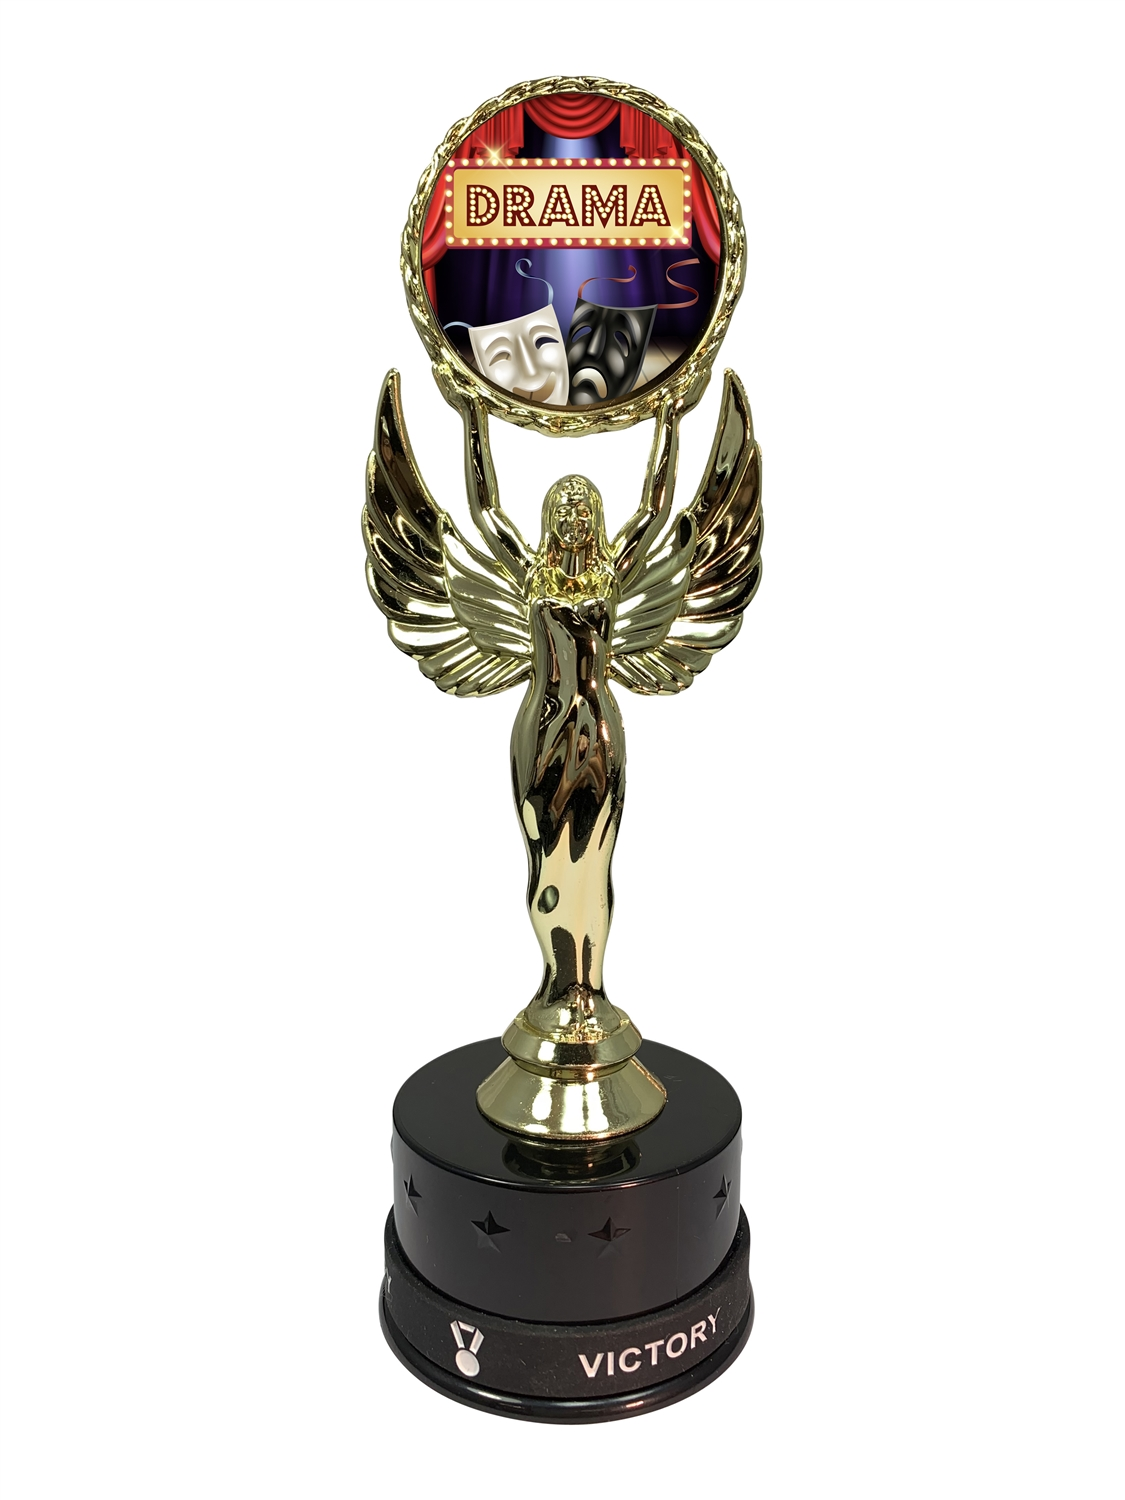 Drama Victory Wristband Trophy